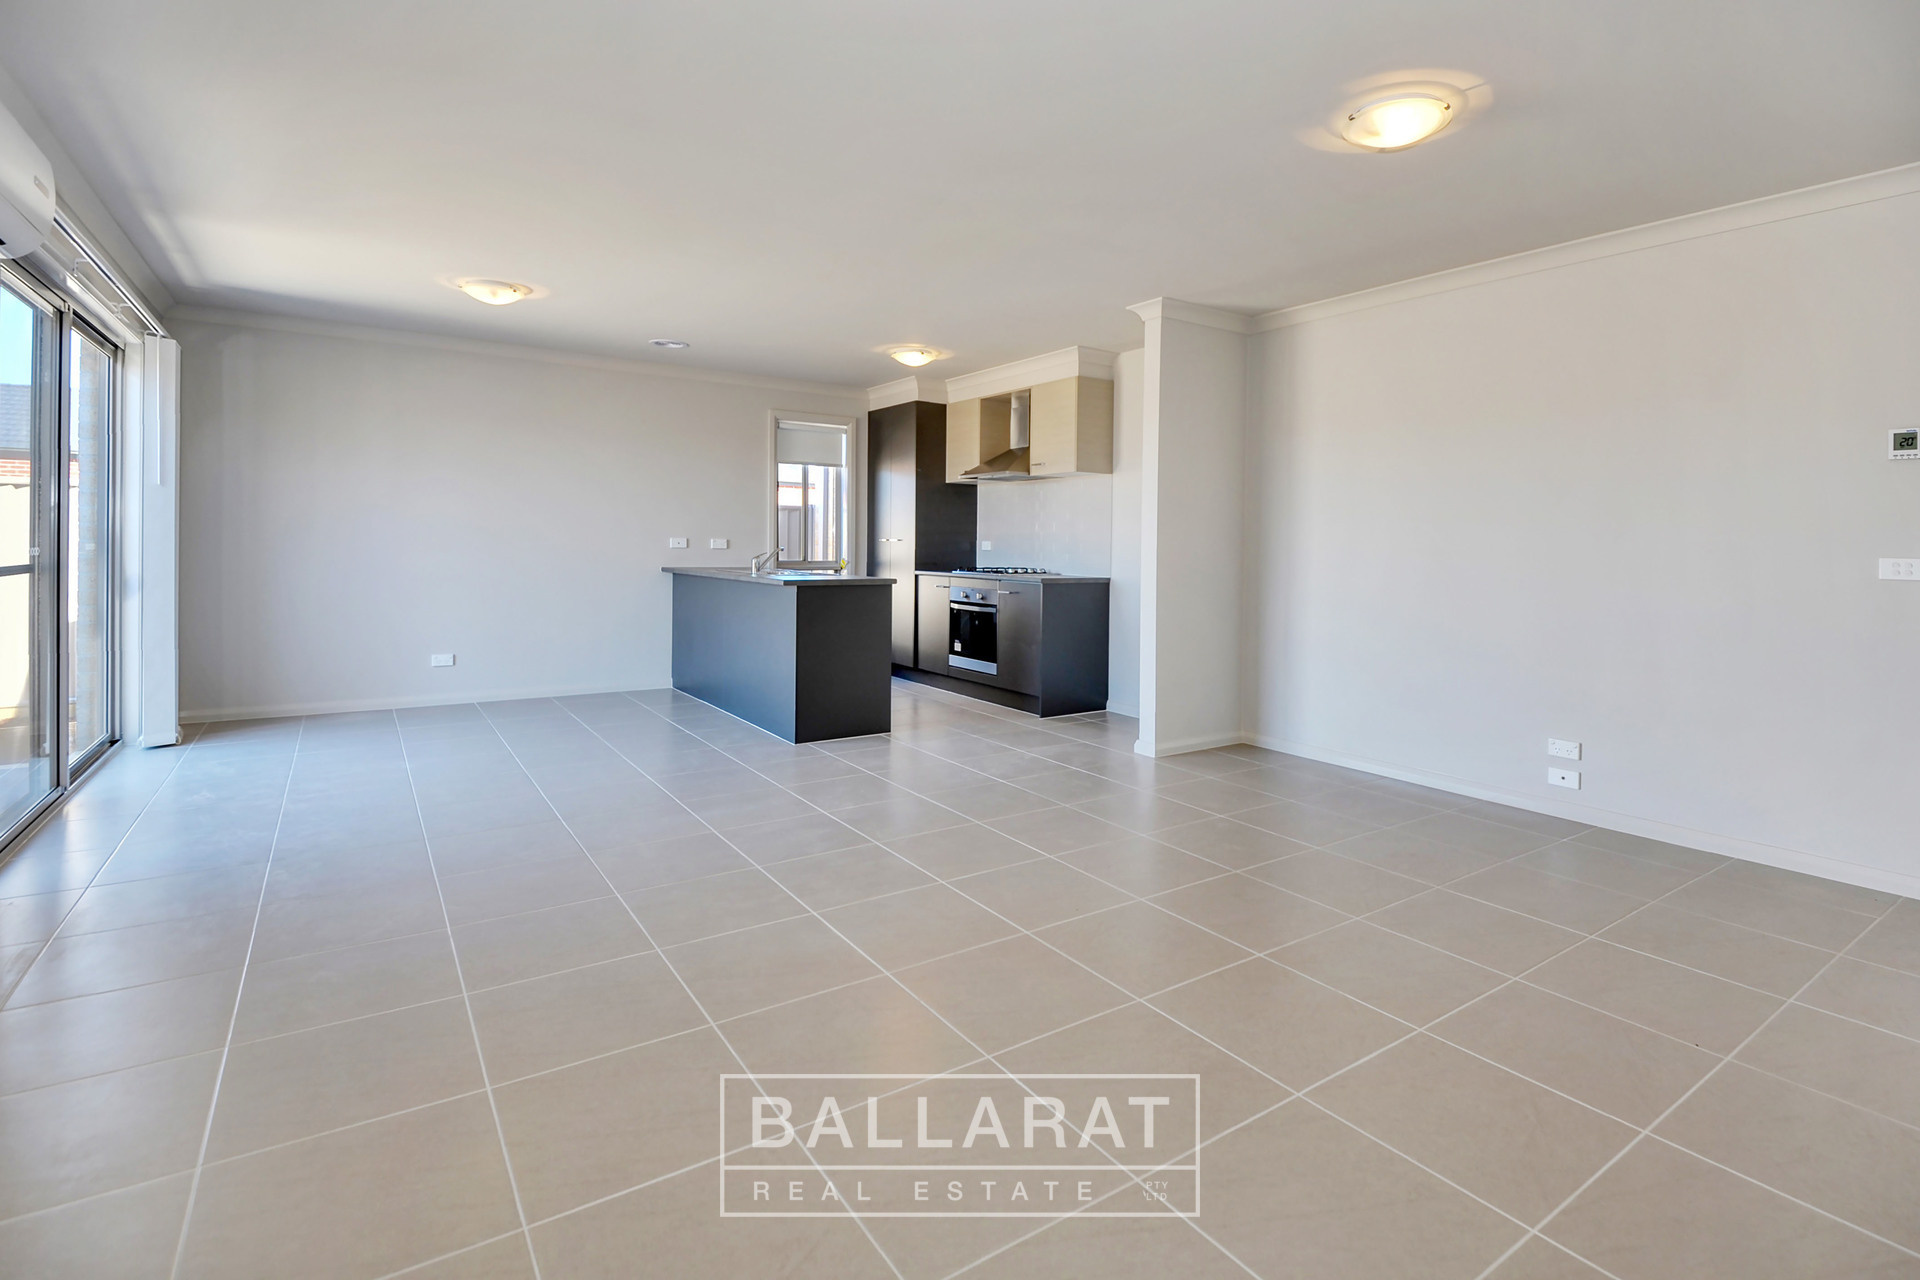 171 Ballarat Carngham Road Winter Valley